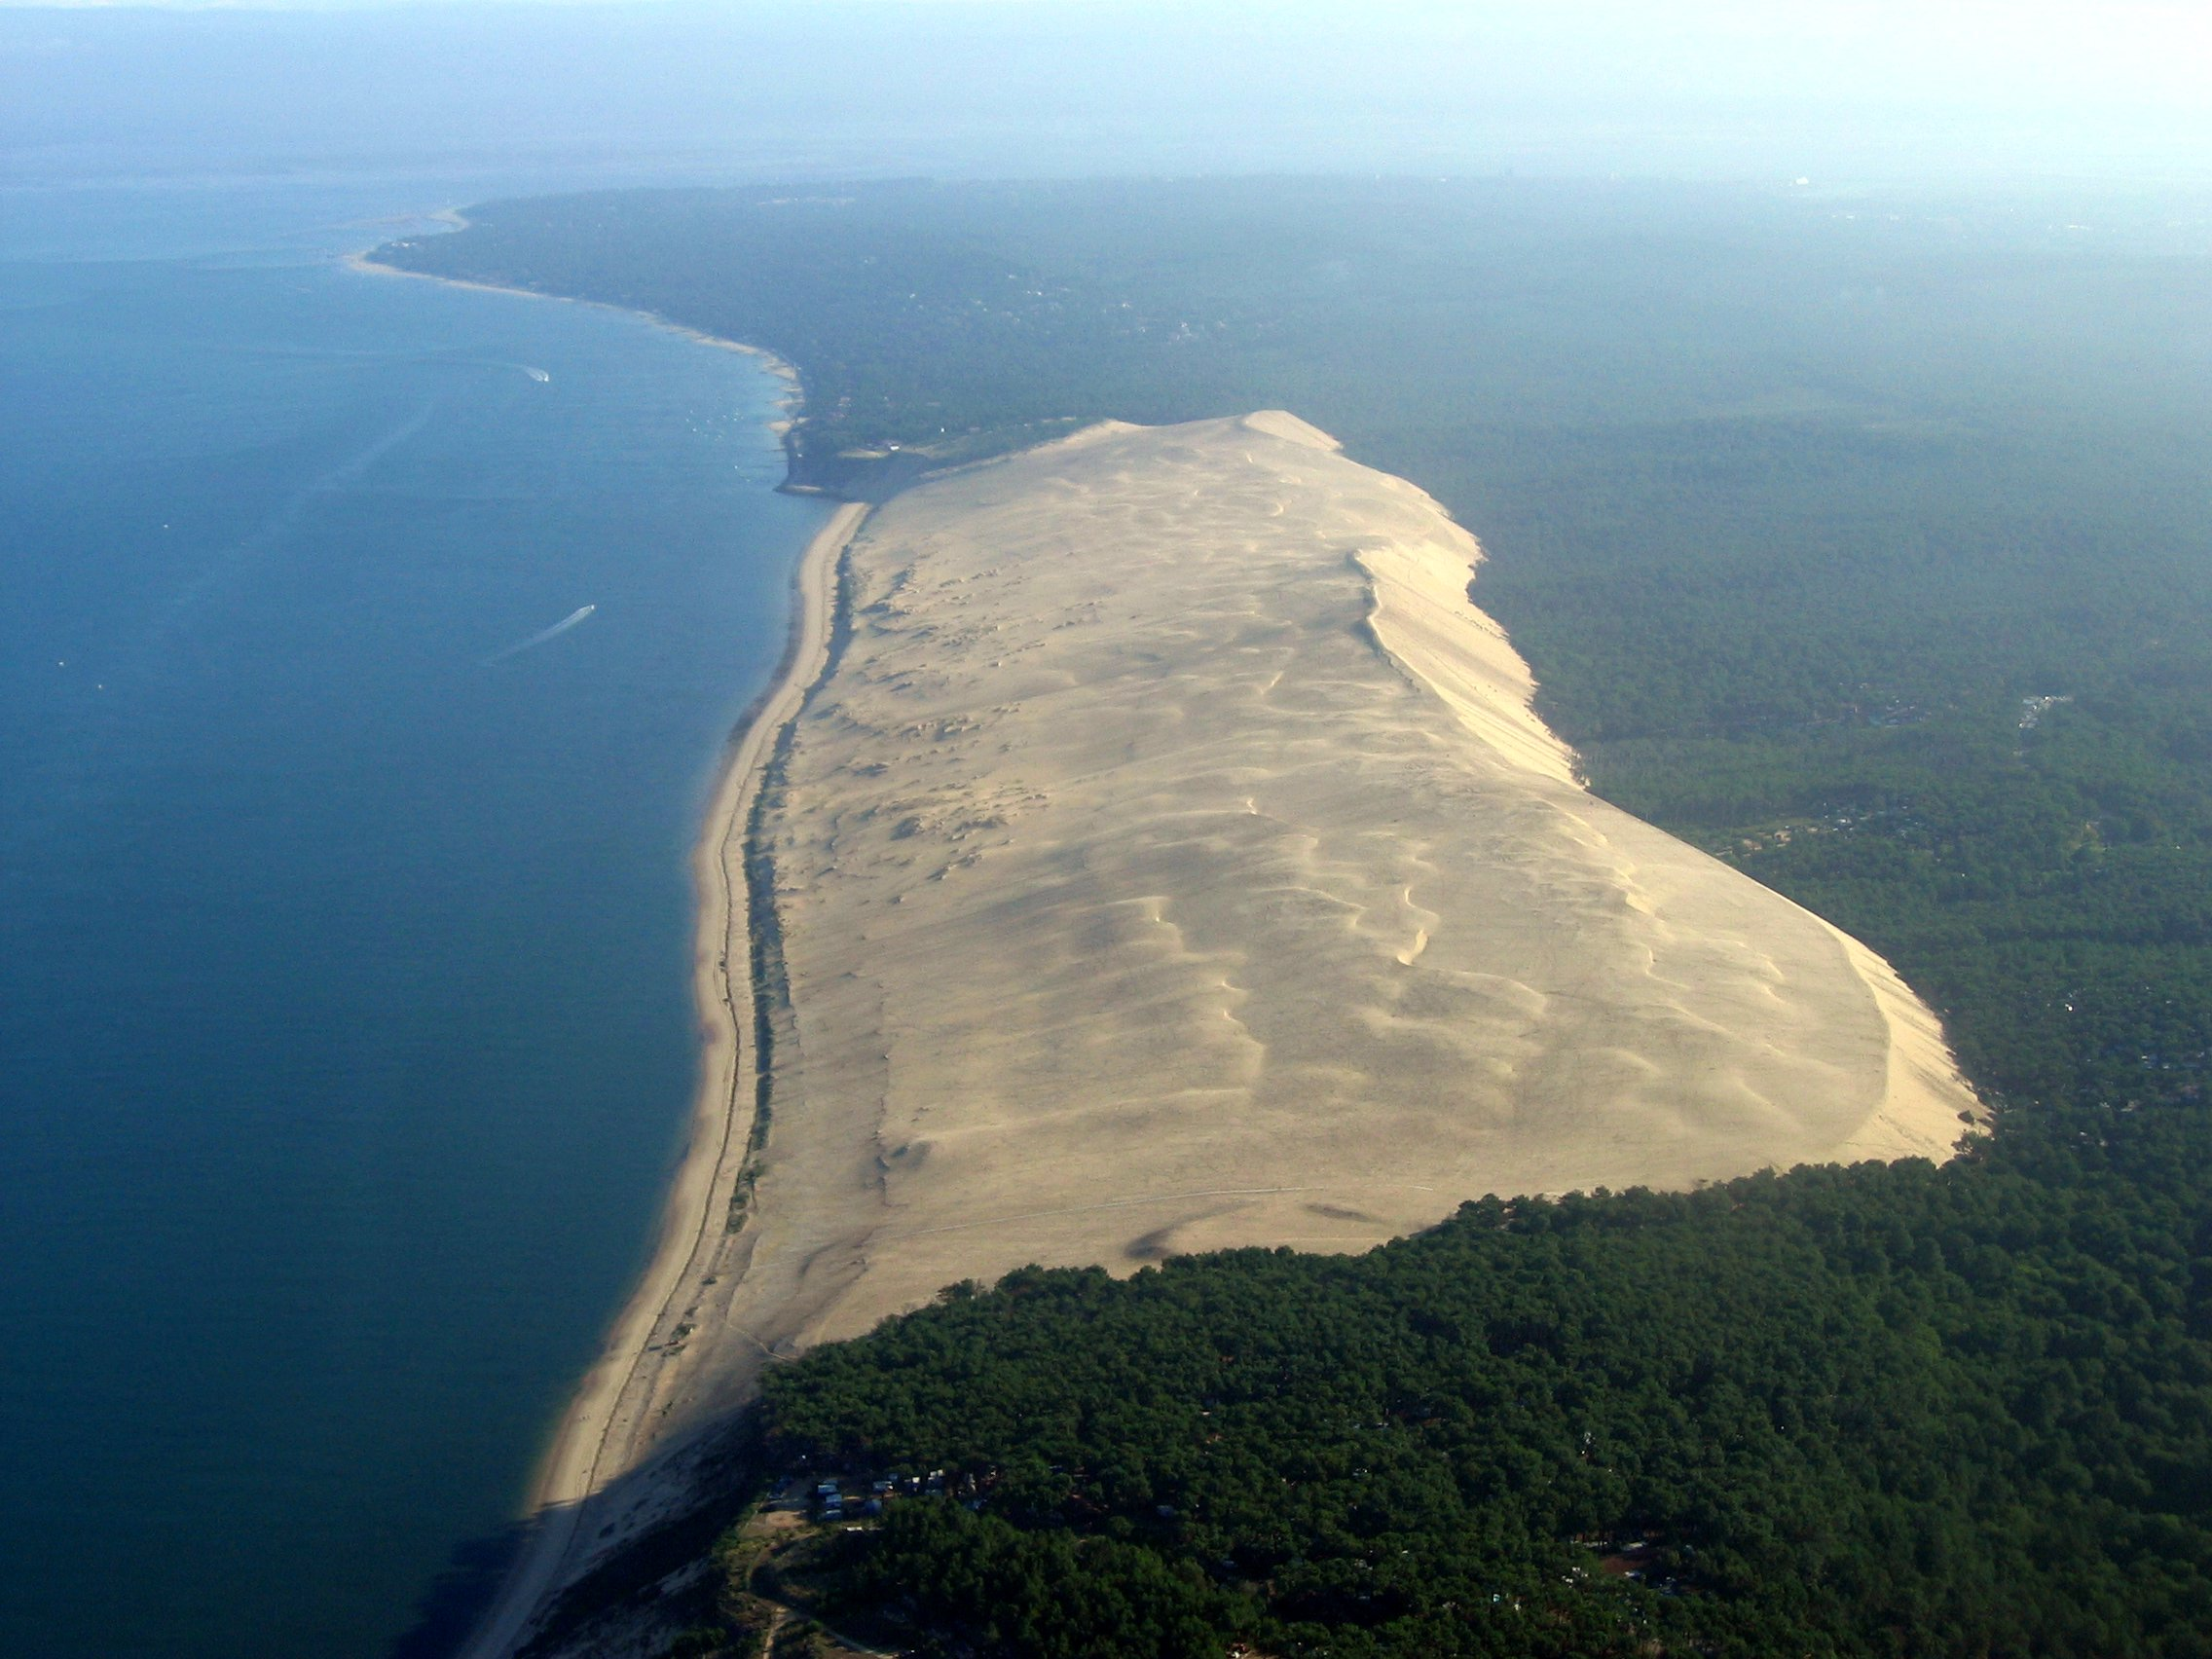 Dune of Pilat - Wikipedia, the free encyclopedia